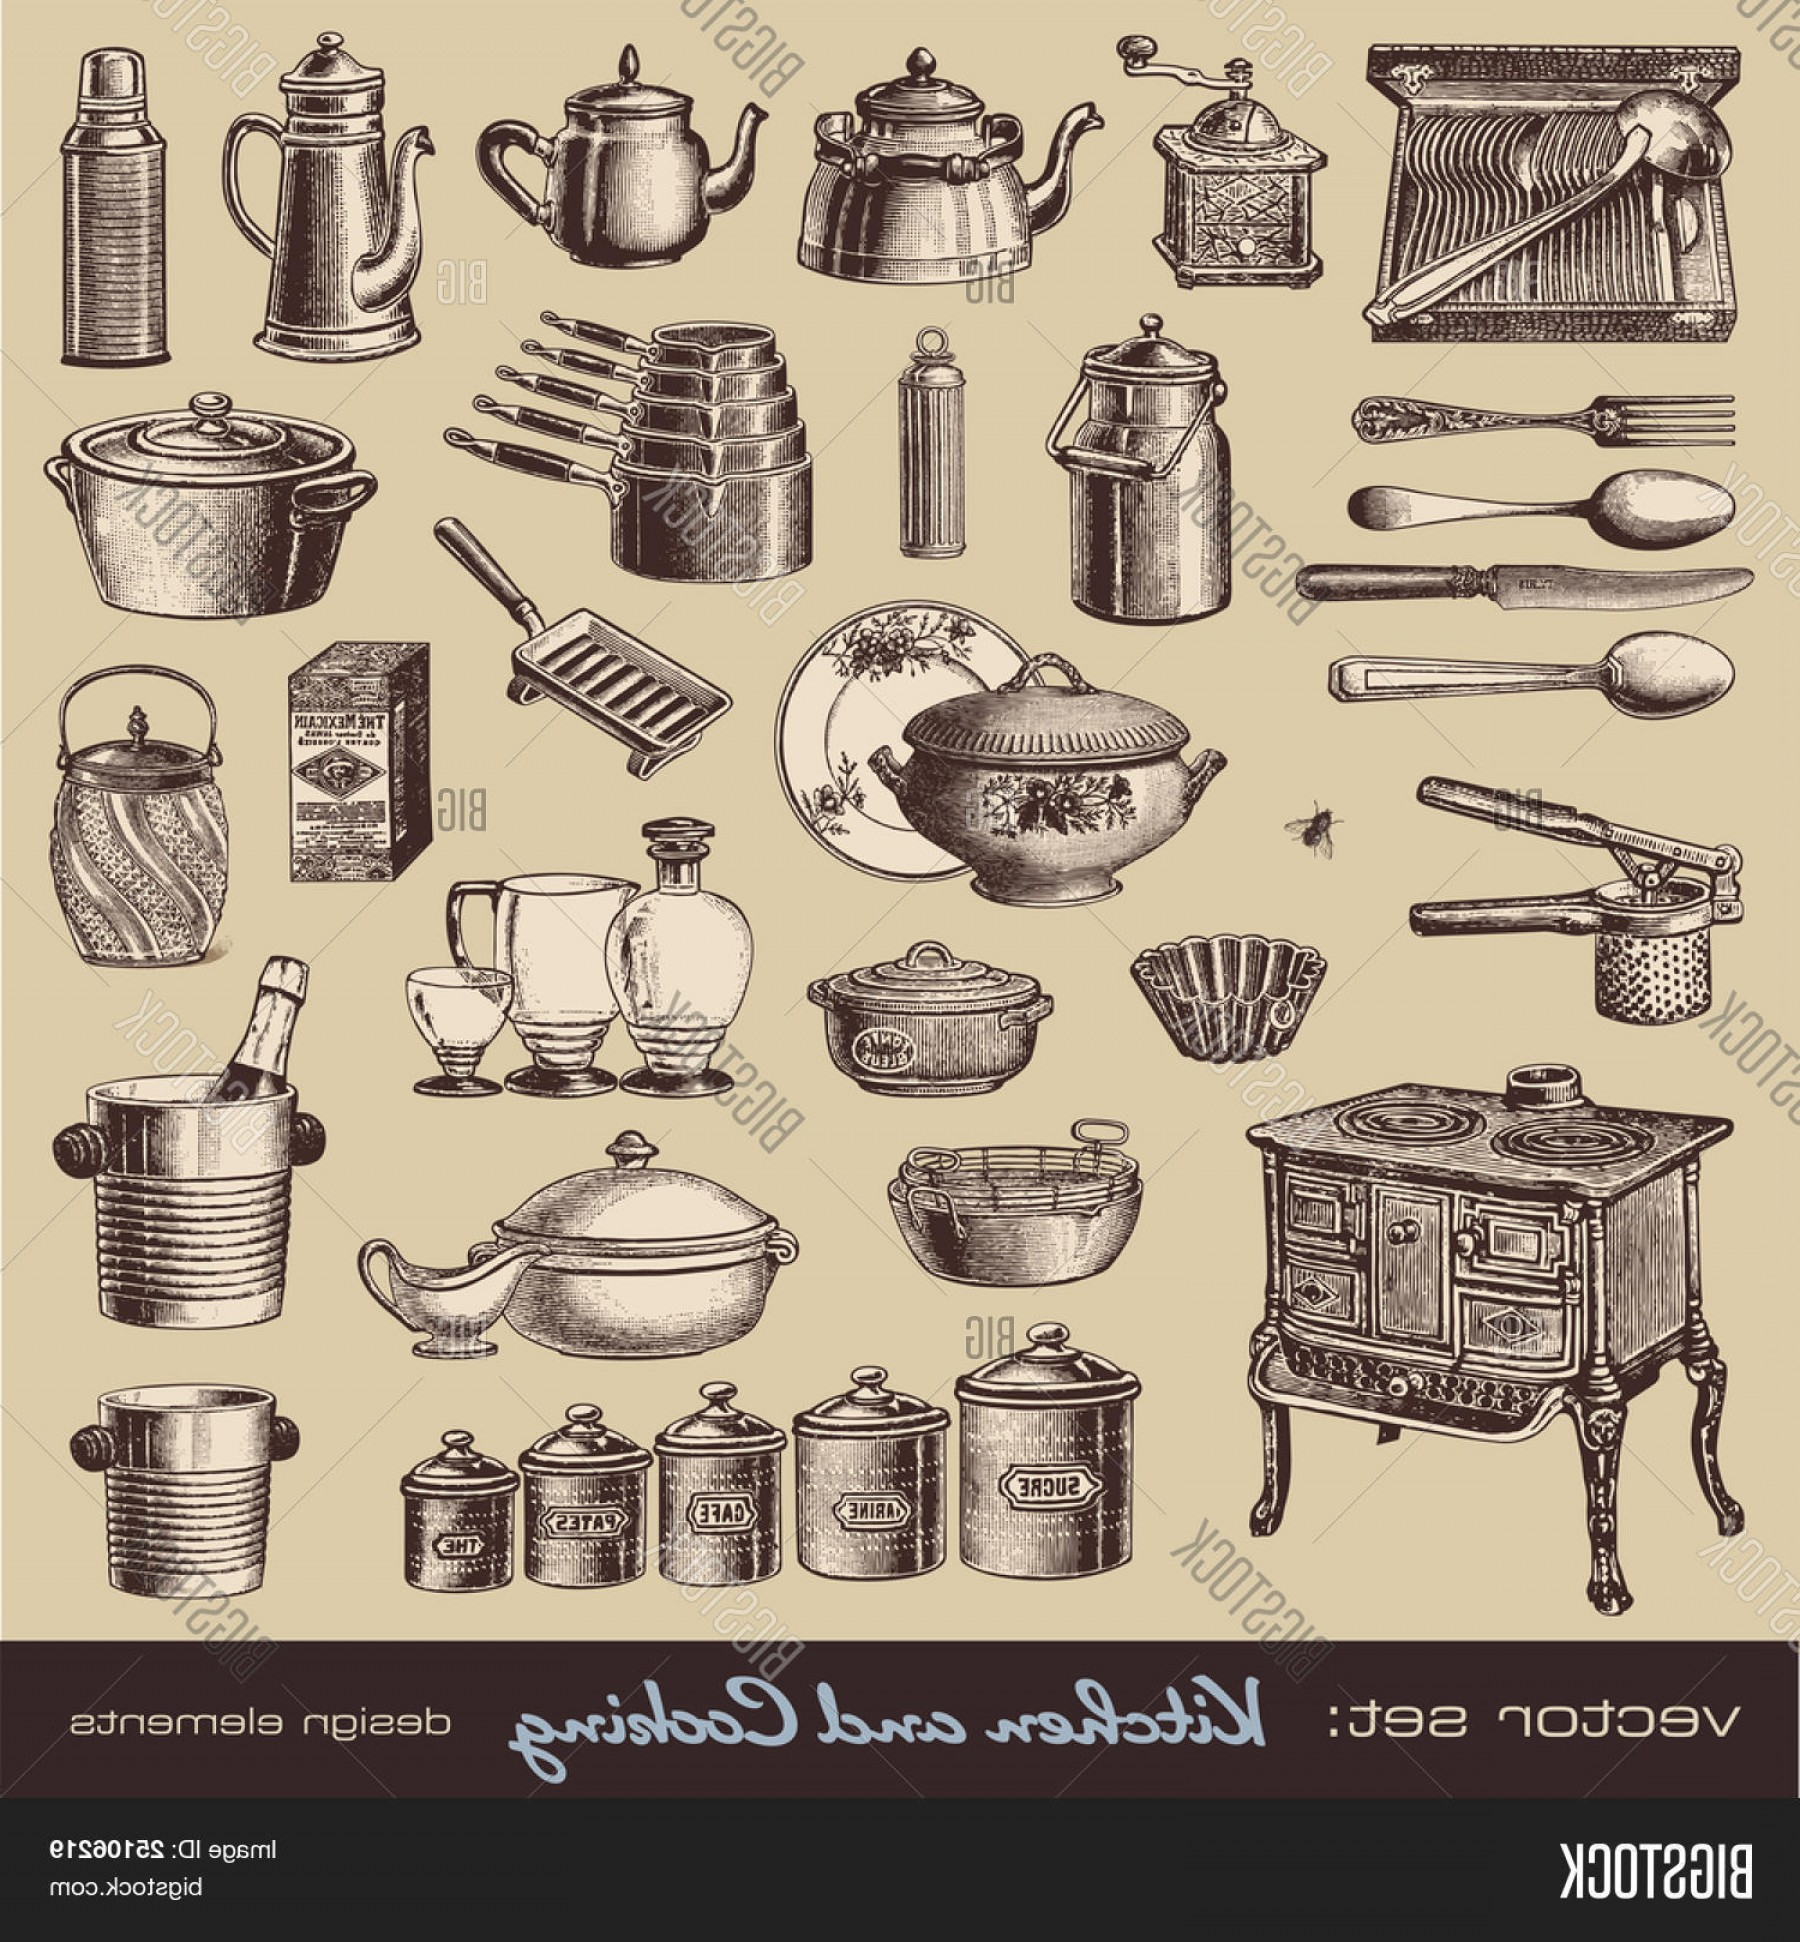 Vector Vintage Kitchen: Stock Vector Vector Seta Kitchen And Cooking Collection Of Vintage Kitchen Items And Tableware